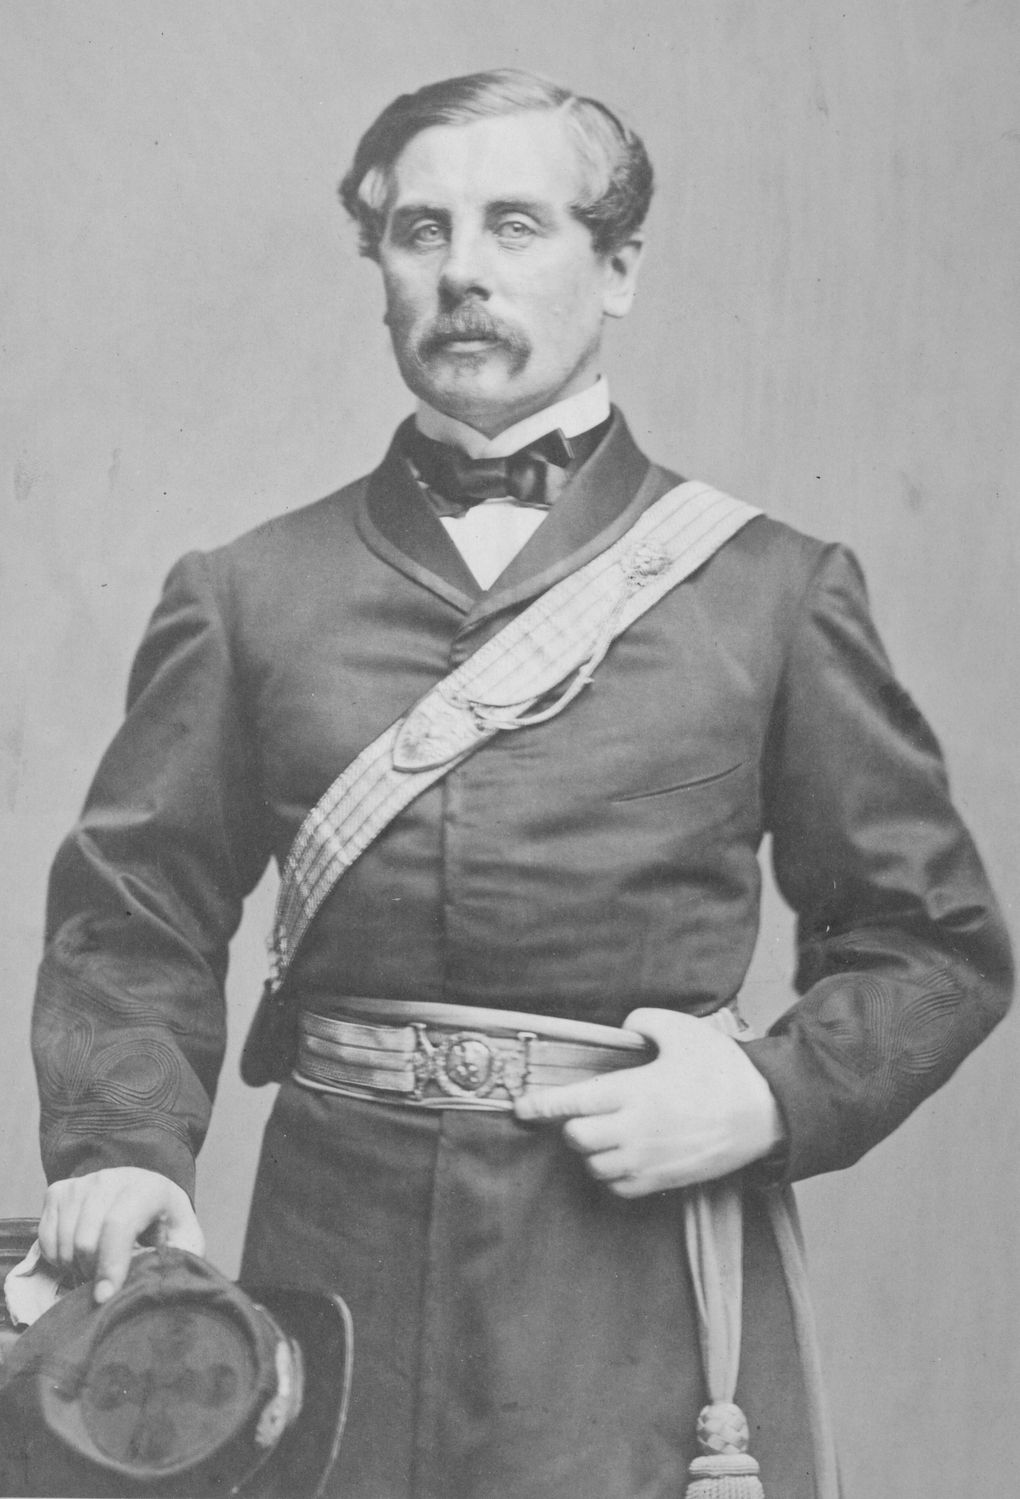 General Thomas Francis Meagher, in 1863. Hardened by war and facing criticism from fellow Irish, Meagher continued to rally his countrymen to the Union cause despite suffering heavy losses.